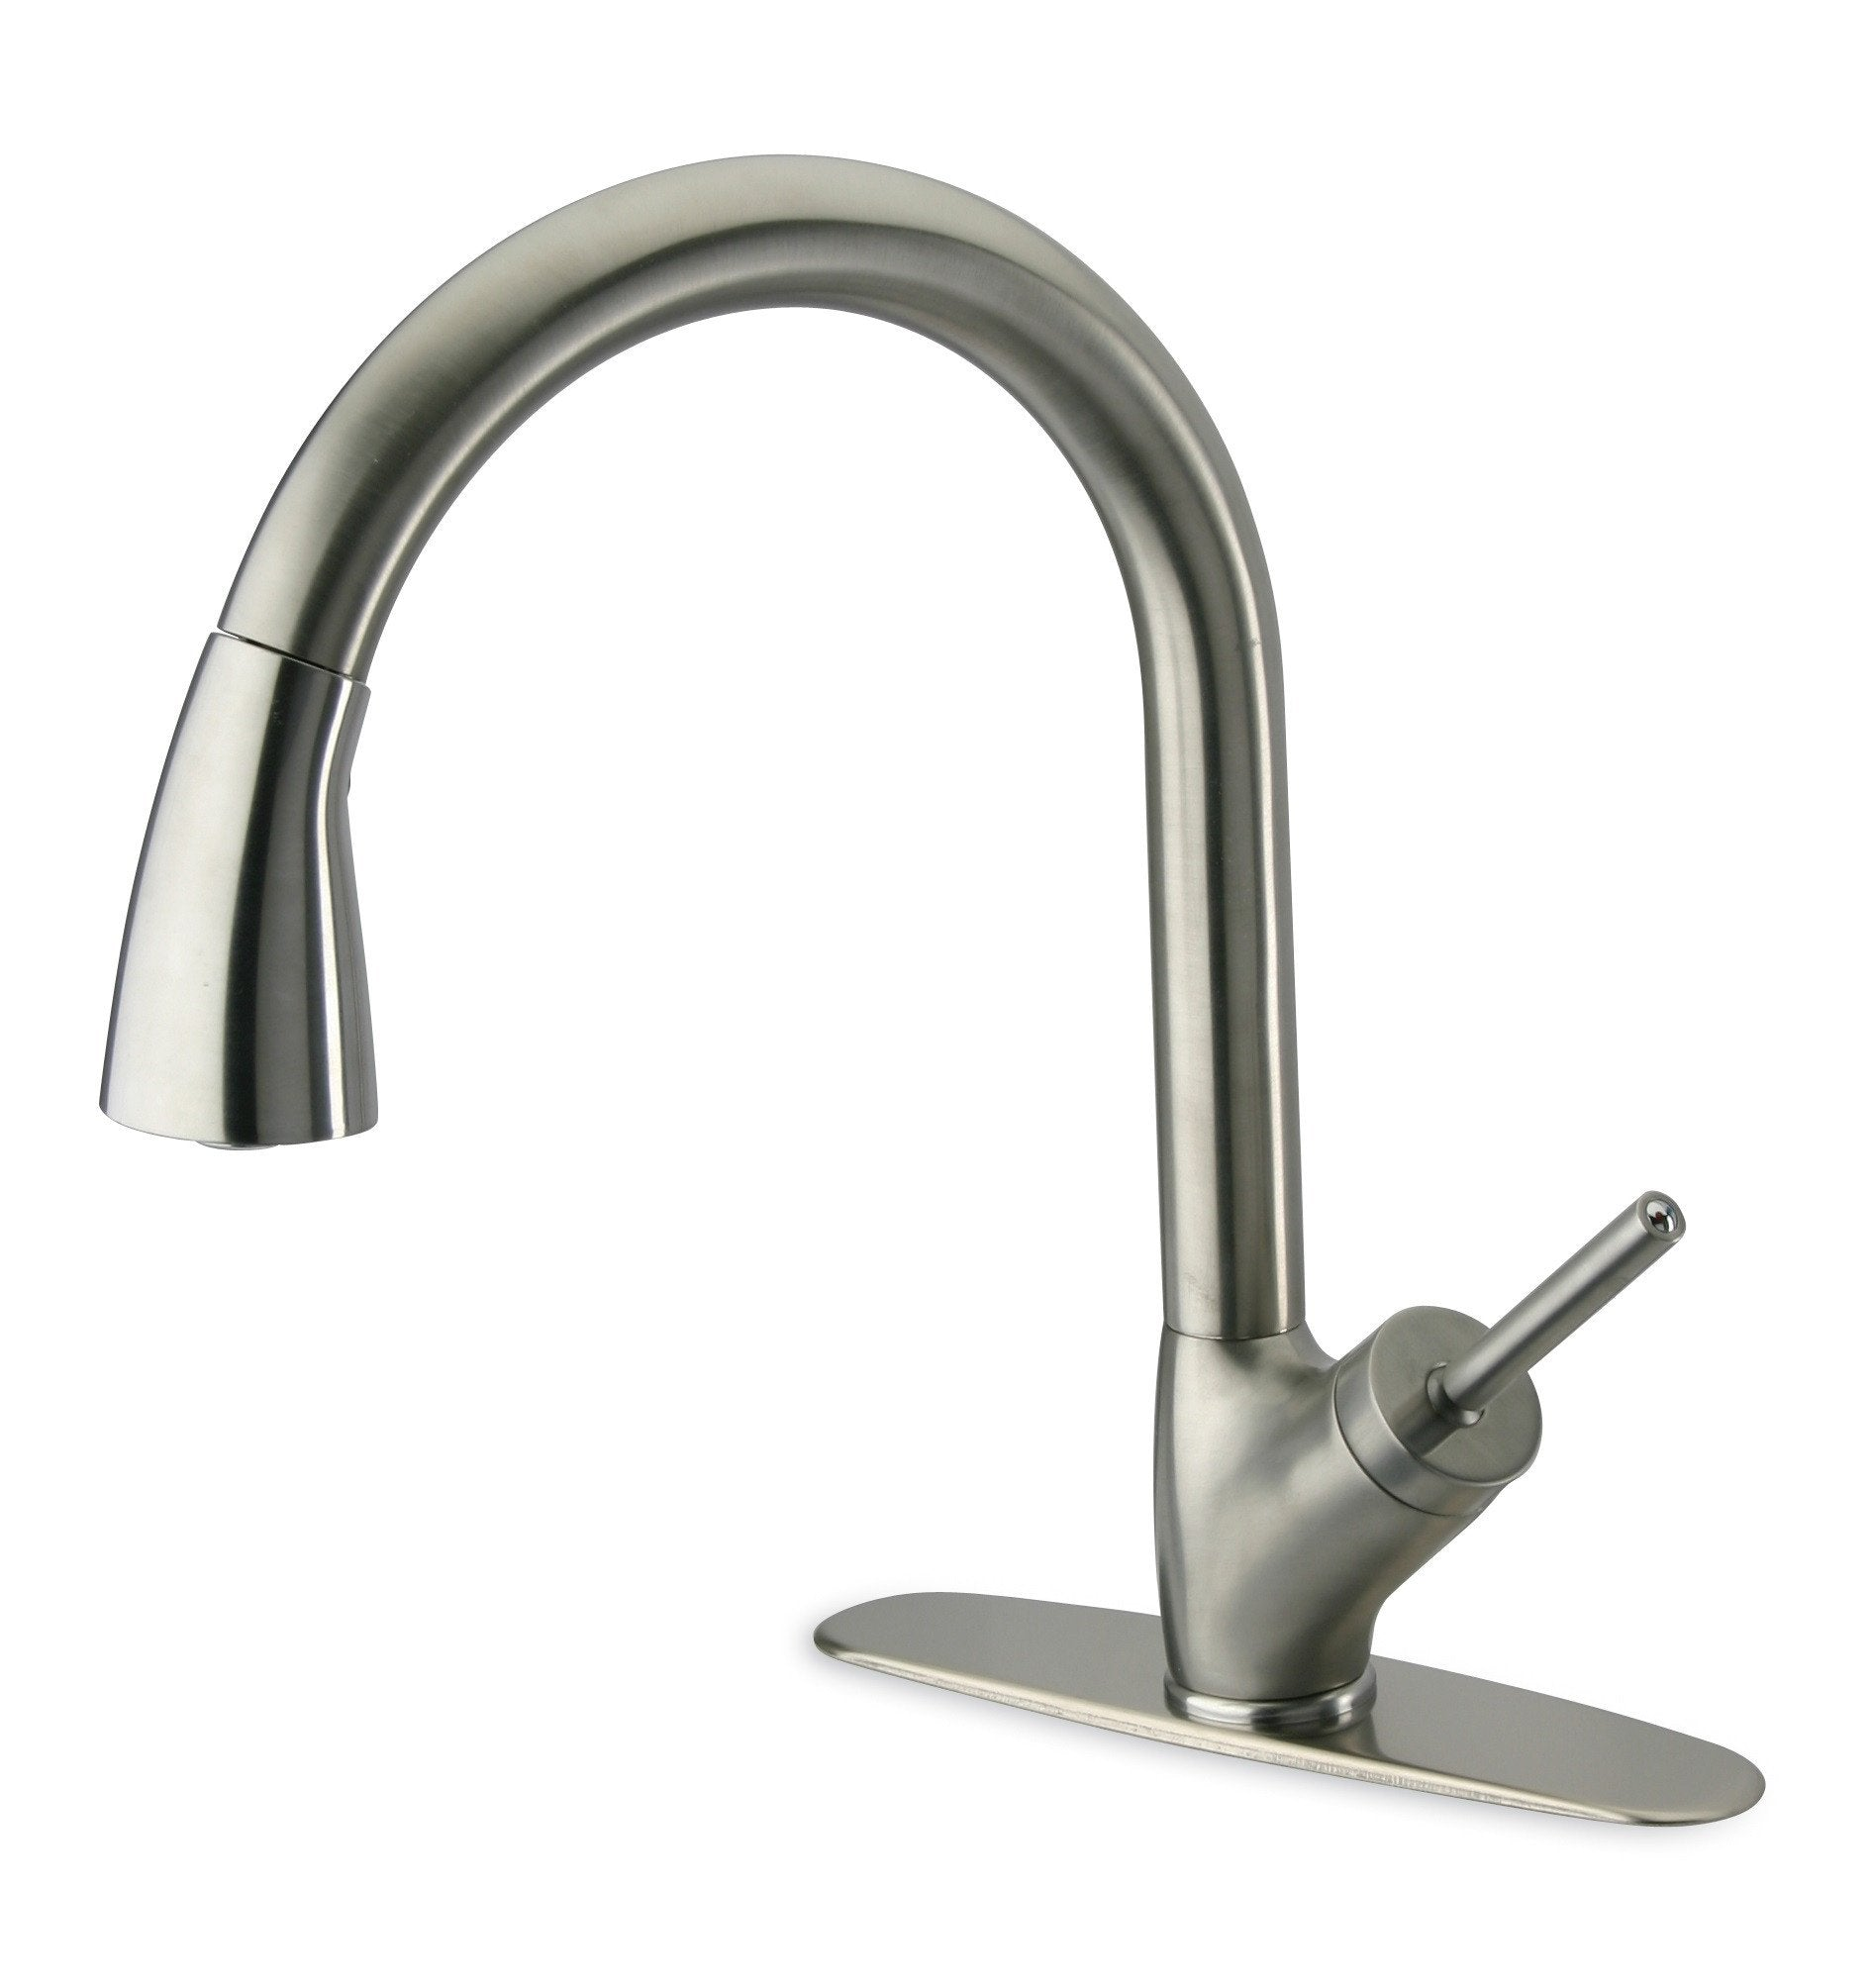 ornellaia chrome faucet la faucets included handle combos shower and tub spray bathtub toscana valve in p single latoscana